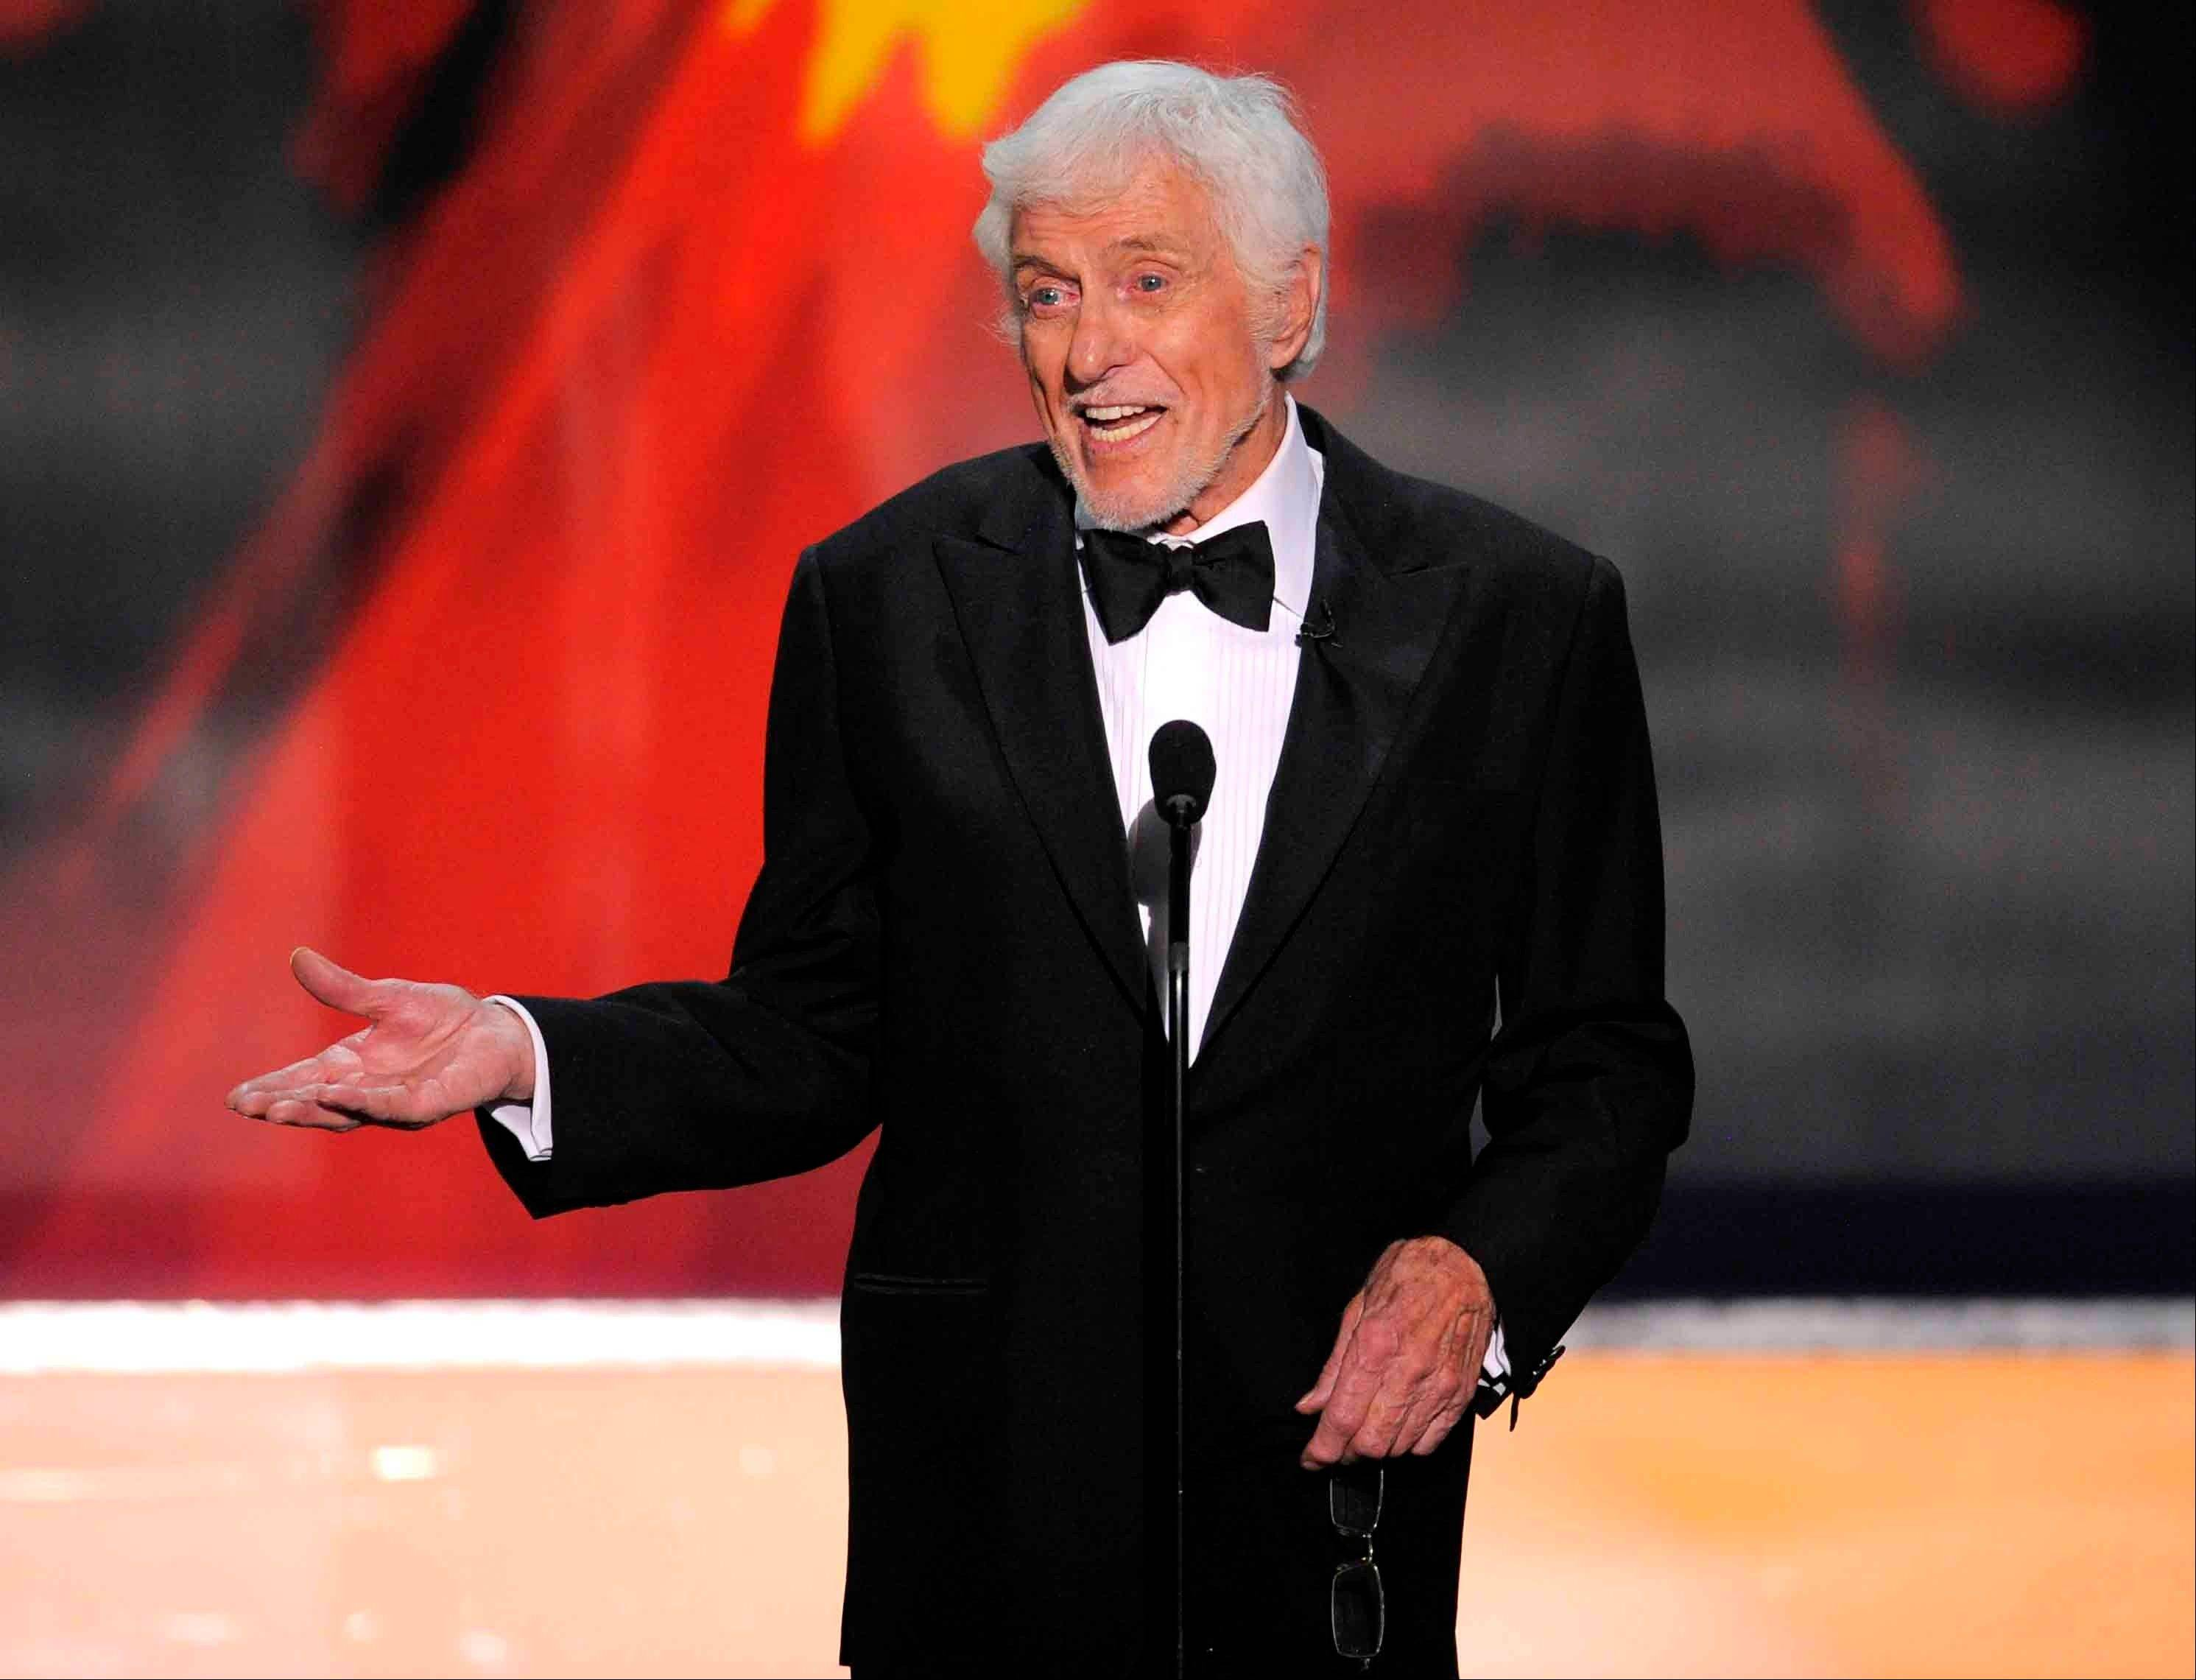 Last year, Dick Van Dyke presented the Life Achievement award onstage to Mary Tyler Moore at the 18th Annual Screen Actors Guild Awards in Los Angeles. This year, he will receive that award.